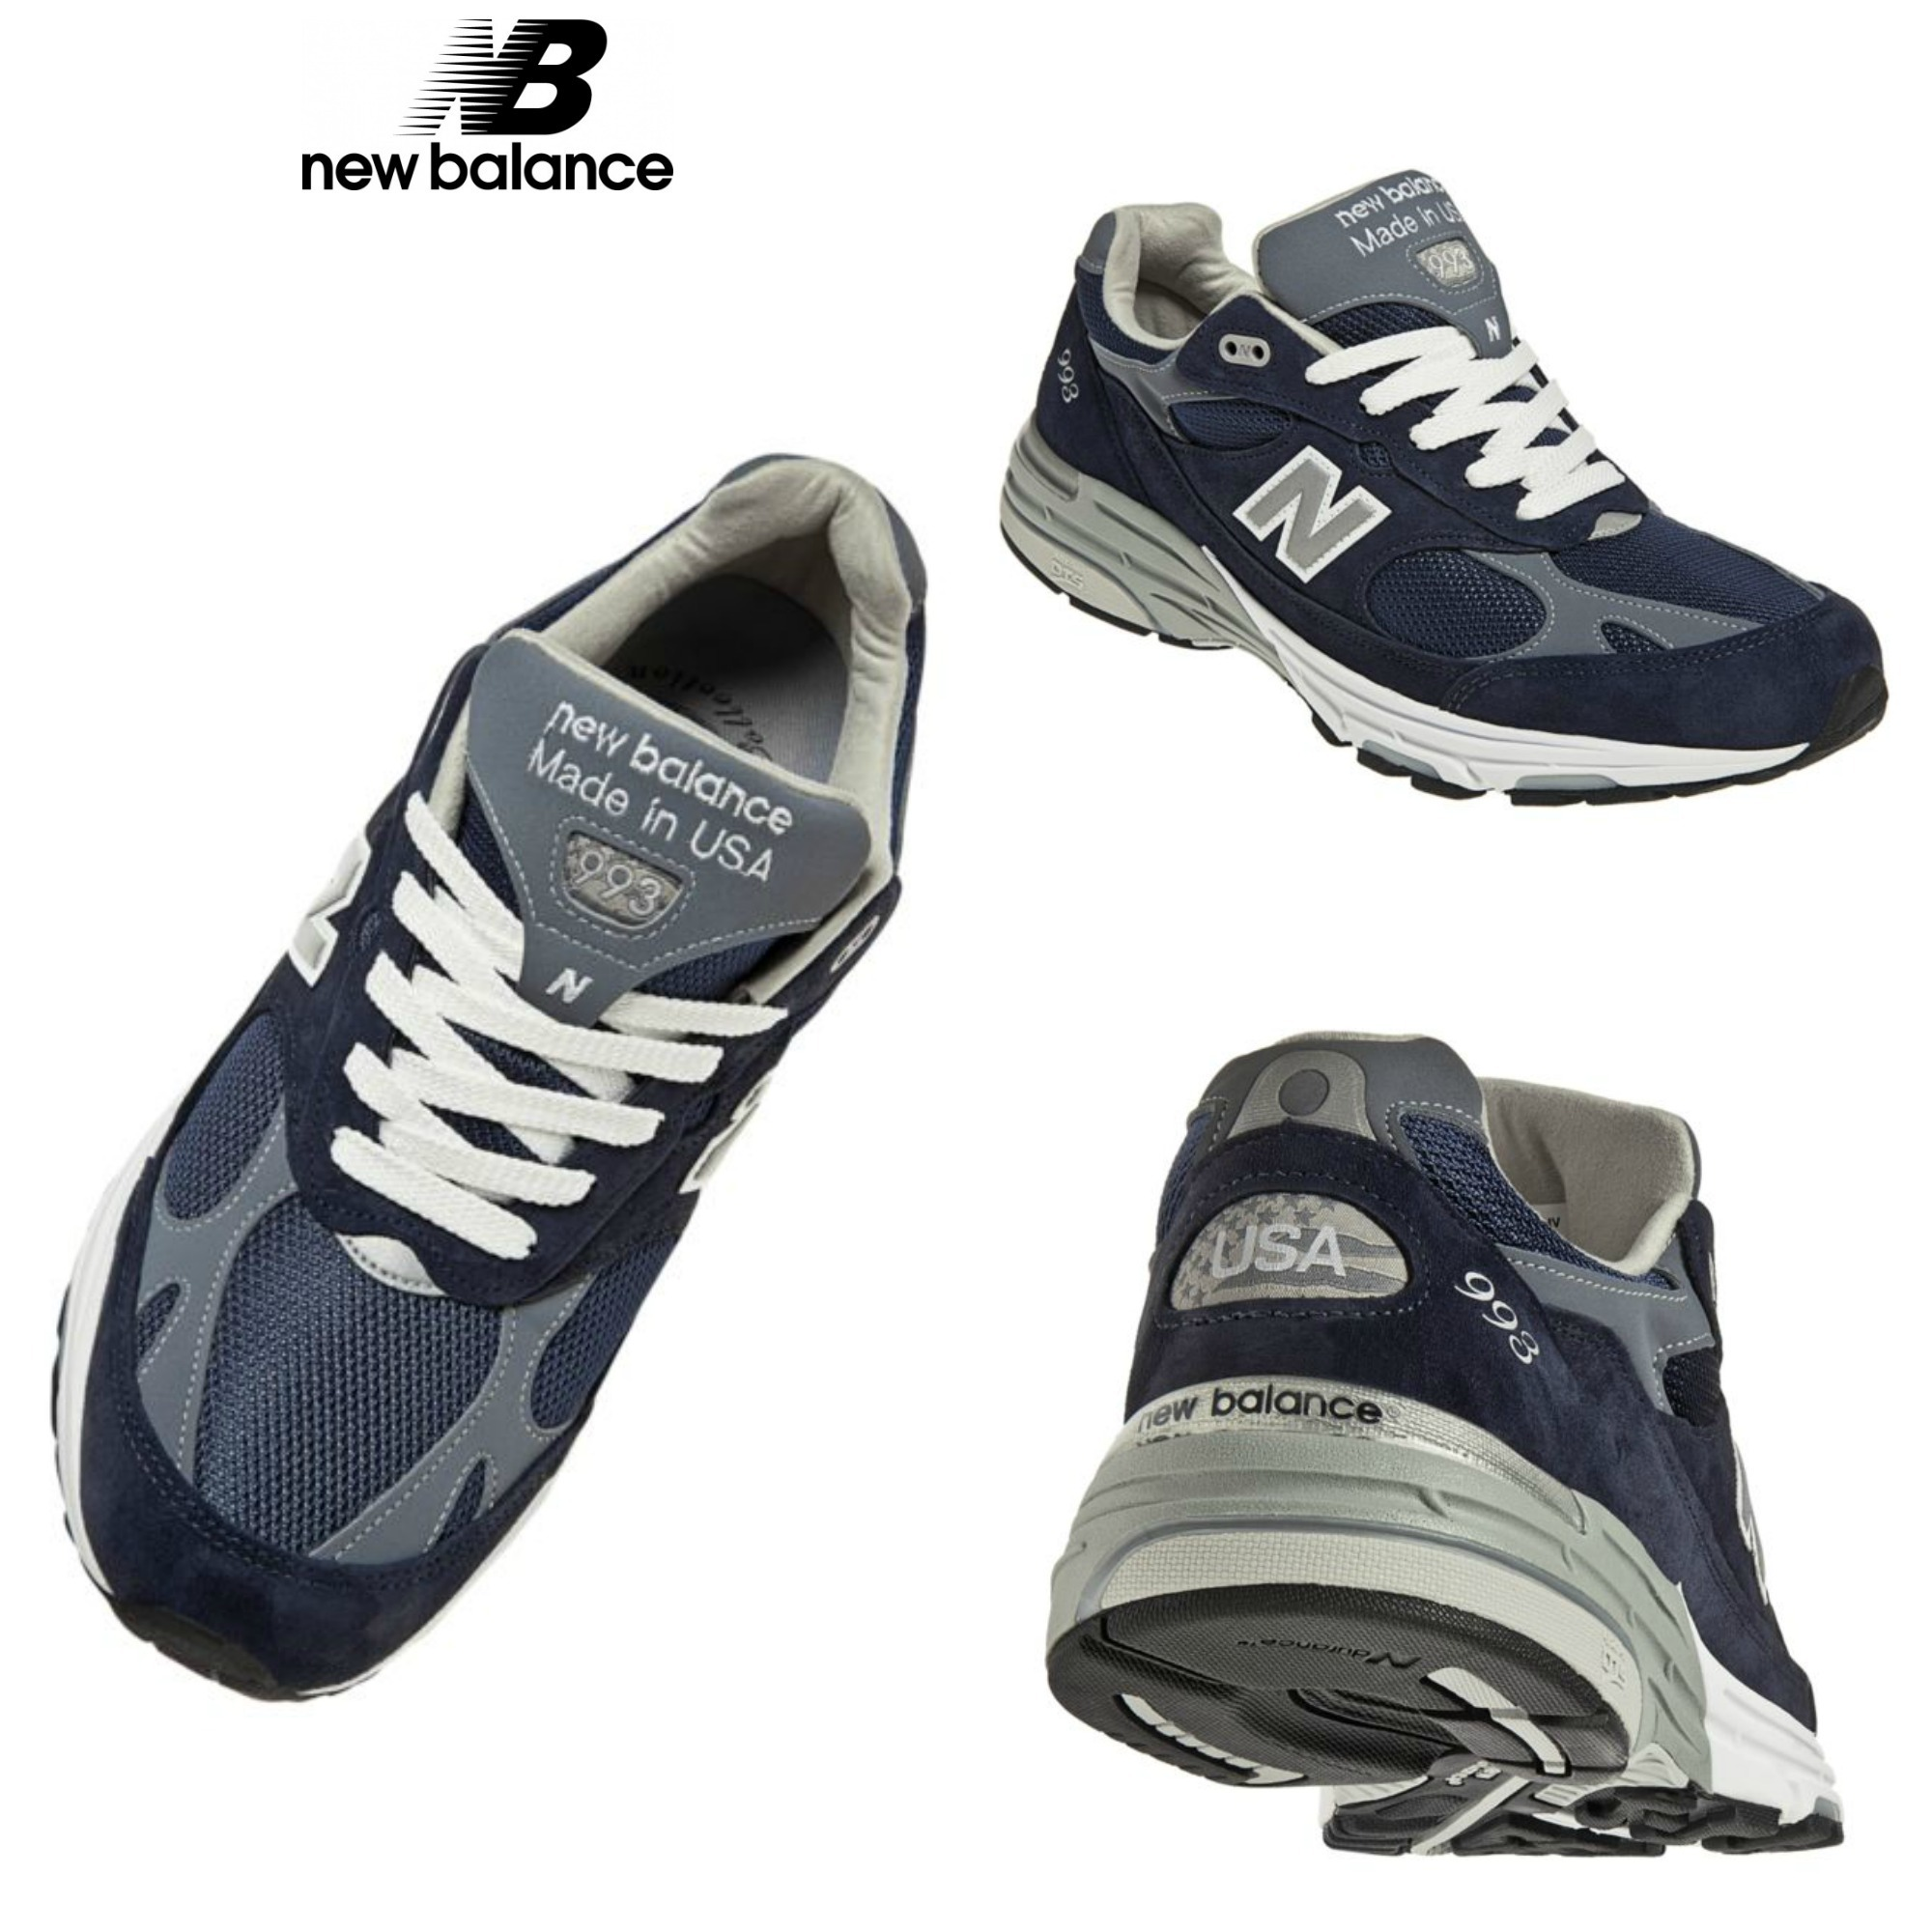 chaussures de séparation a5b16 664c3 New Balance 993 Street Style Sneakers